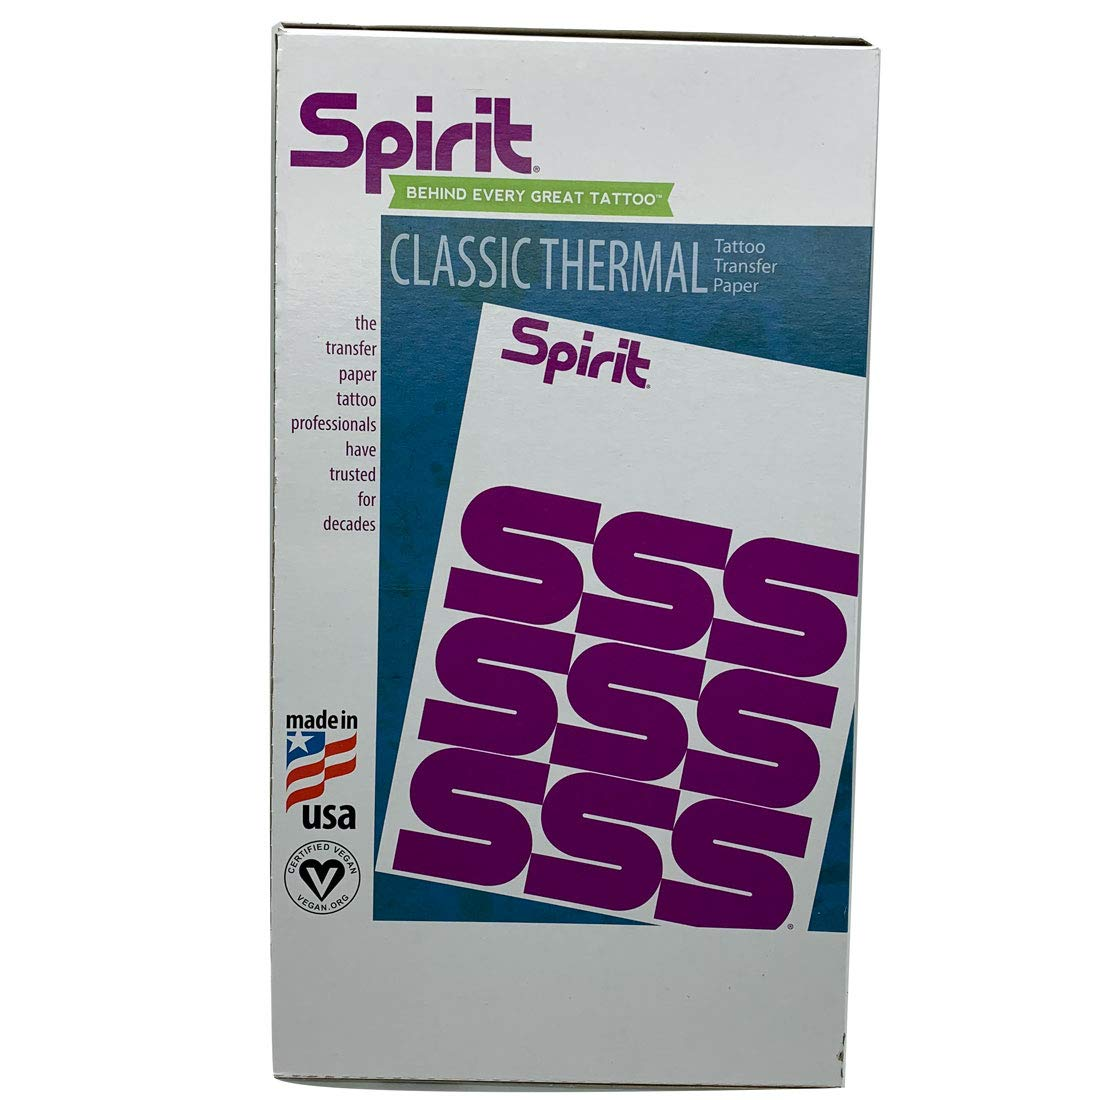 Tattoo Transfer Drawing Paper Spirit Master Reprofx Brand Stencil Transfer Dito Purple Carbon 10-Sheets Size 8.5 X 14 inches